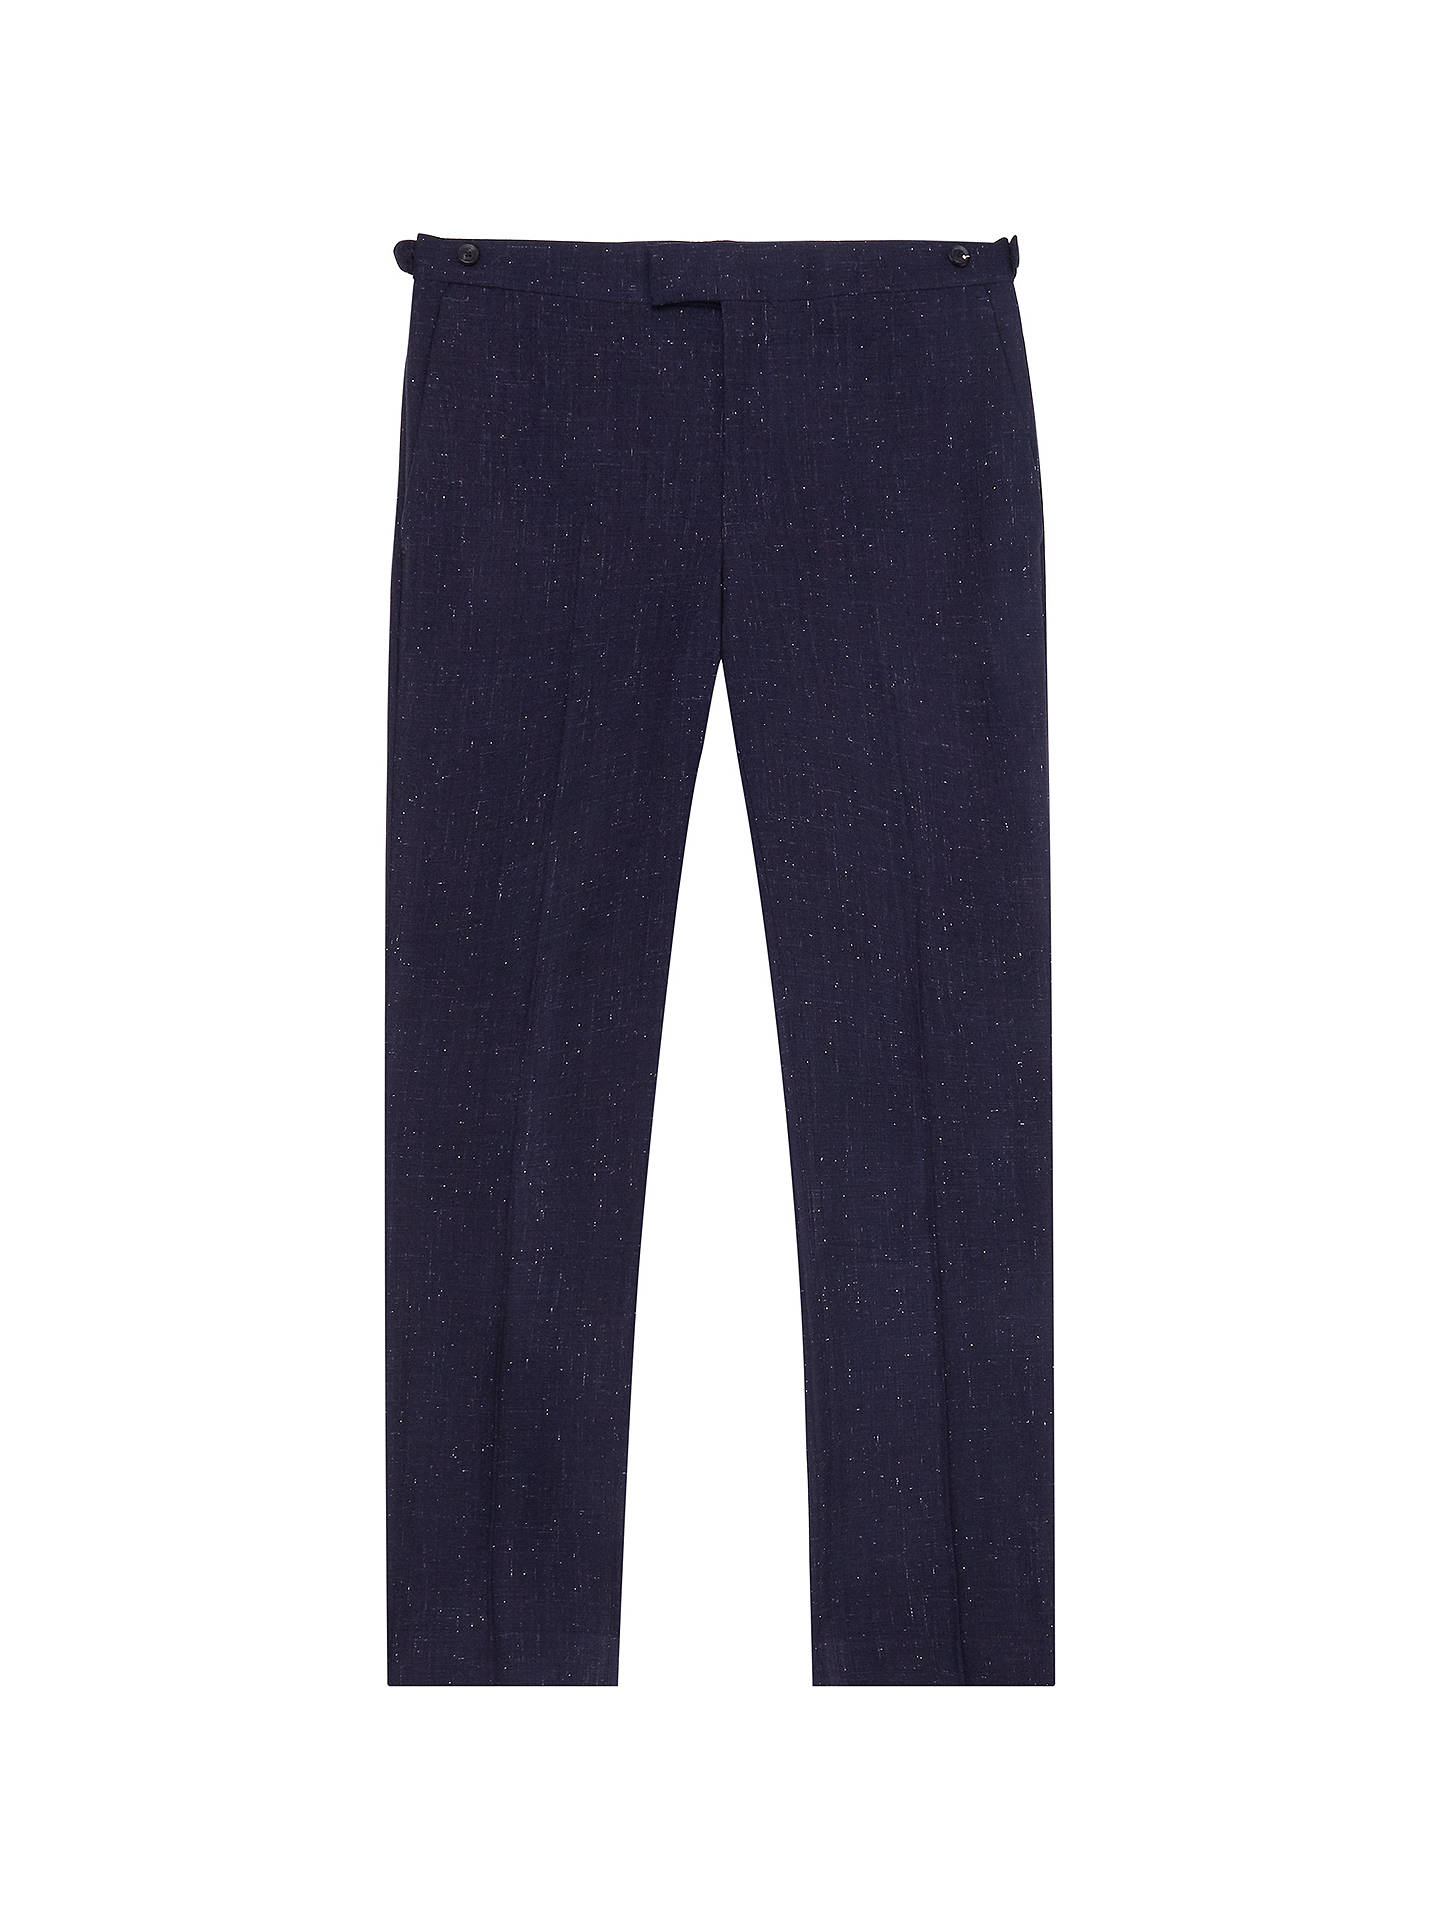 BuyReiss Fountain Nep Texture Slim Fit Suit Trousers, Navy, 30R Online at johnlewis.com